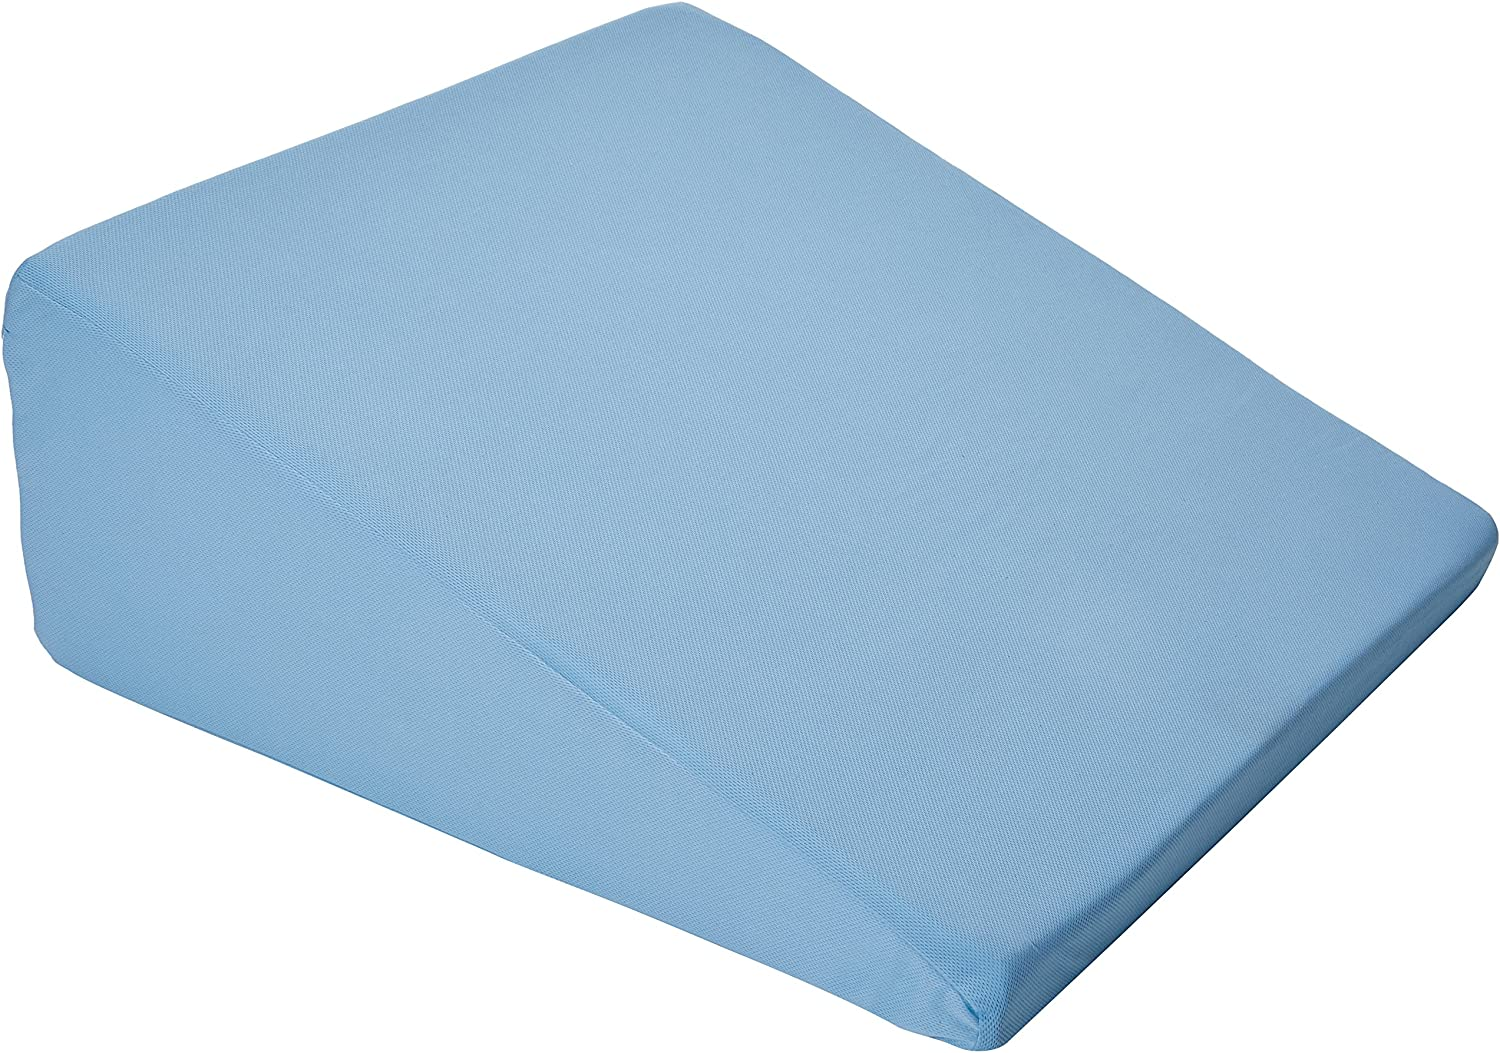 Broyhill Adjustable Inclined Wedge Bed Pillow: Cooling Gel Memory Foam Elevating Support Pillow